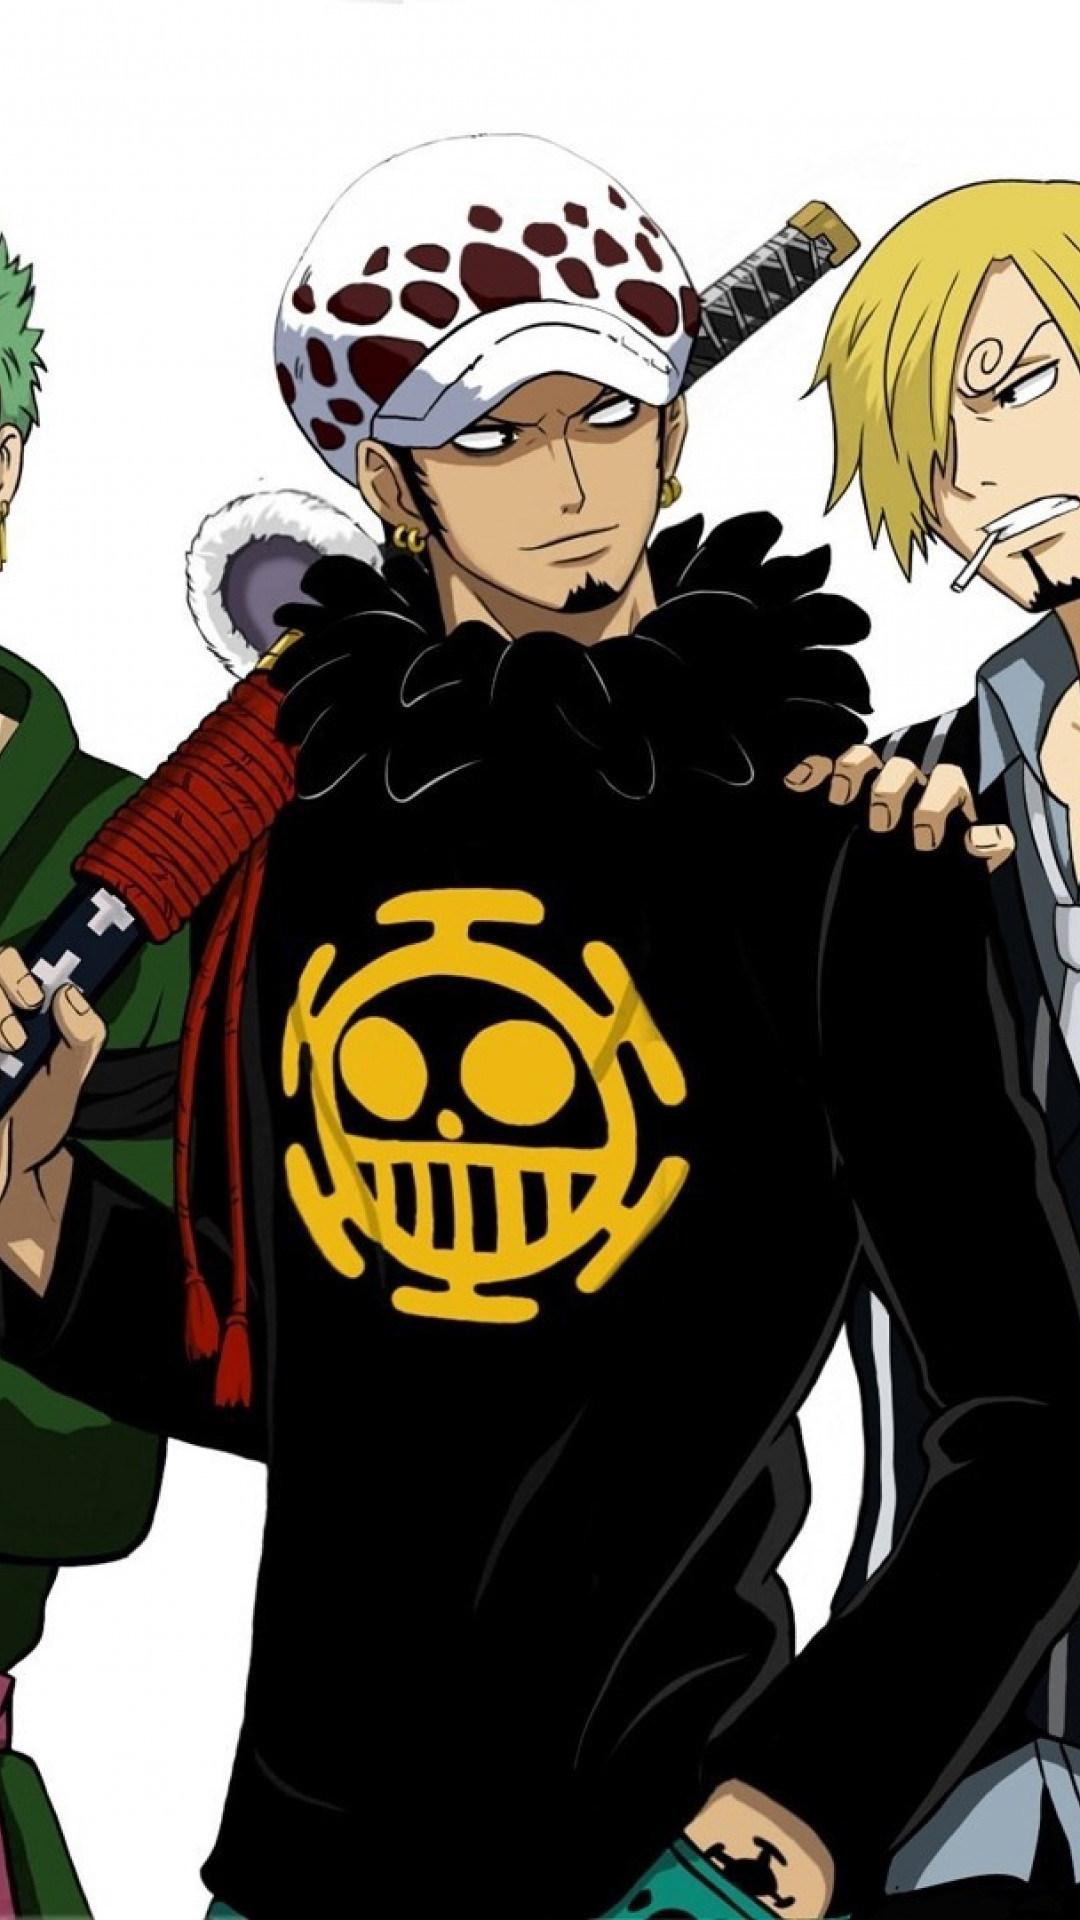 1080x1920 HD Wallpaper One Piece Zoro,Law and Sanji - iPhone 6 Plus. Download · HD Wallpaper  One Piece ...